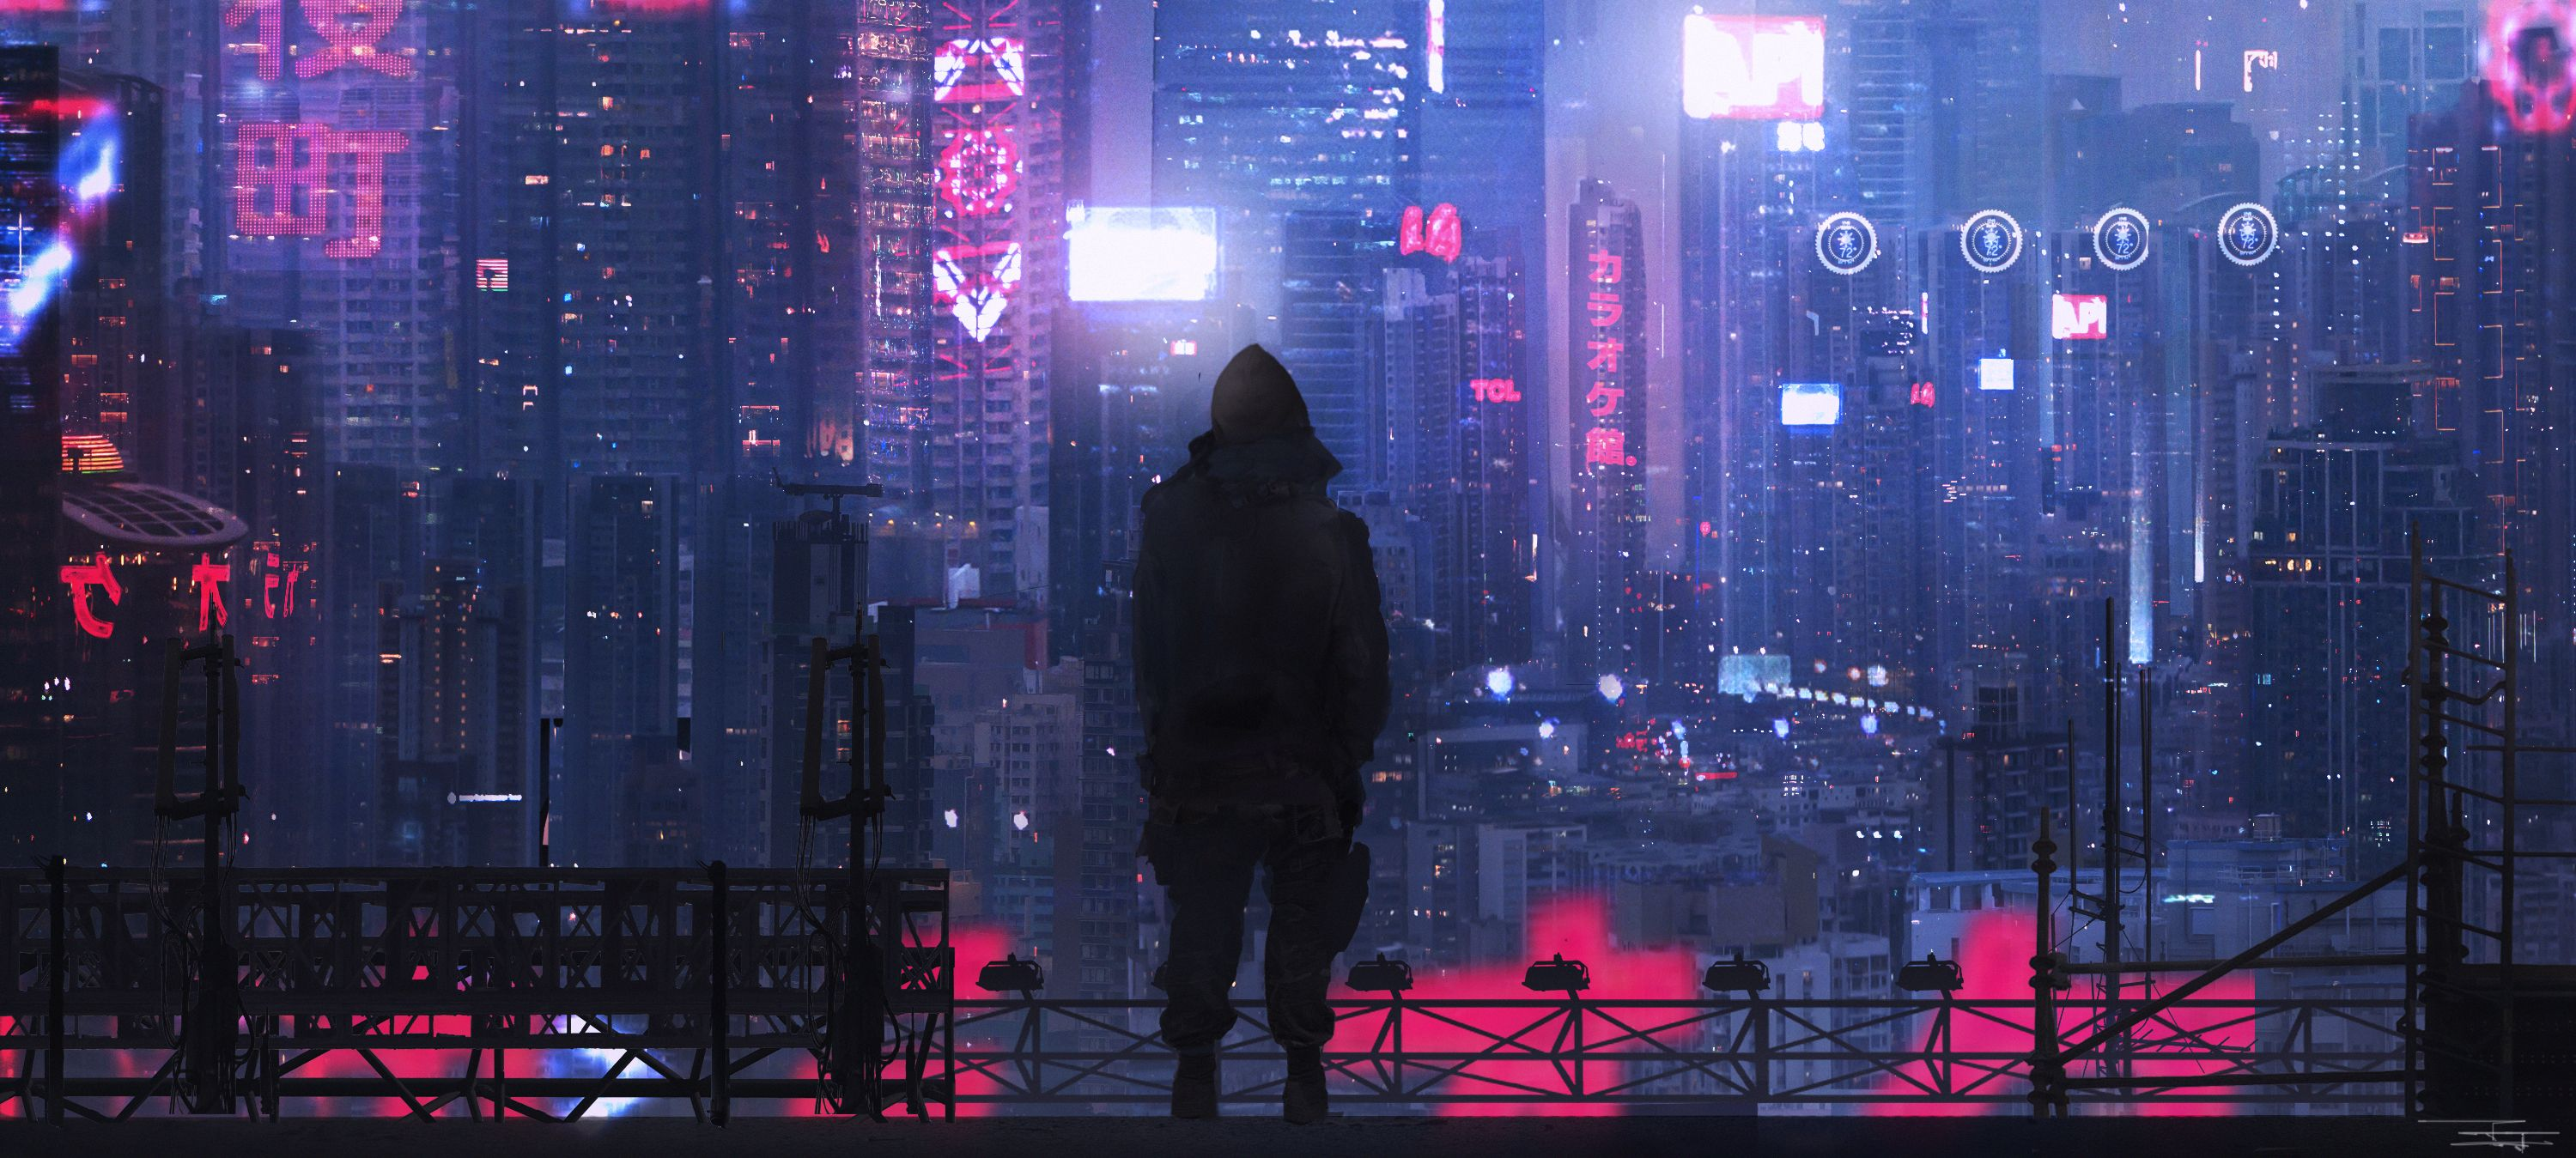 Cheng Yu City Futuristic Digital Art Dystopic Neo Tokyo Futuristic City Science Fiction Dark Nig Futuristic City Fantasy City Cyberpunk City